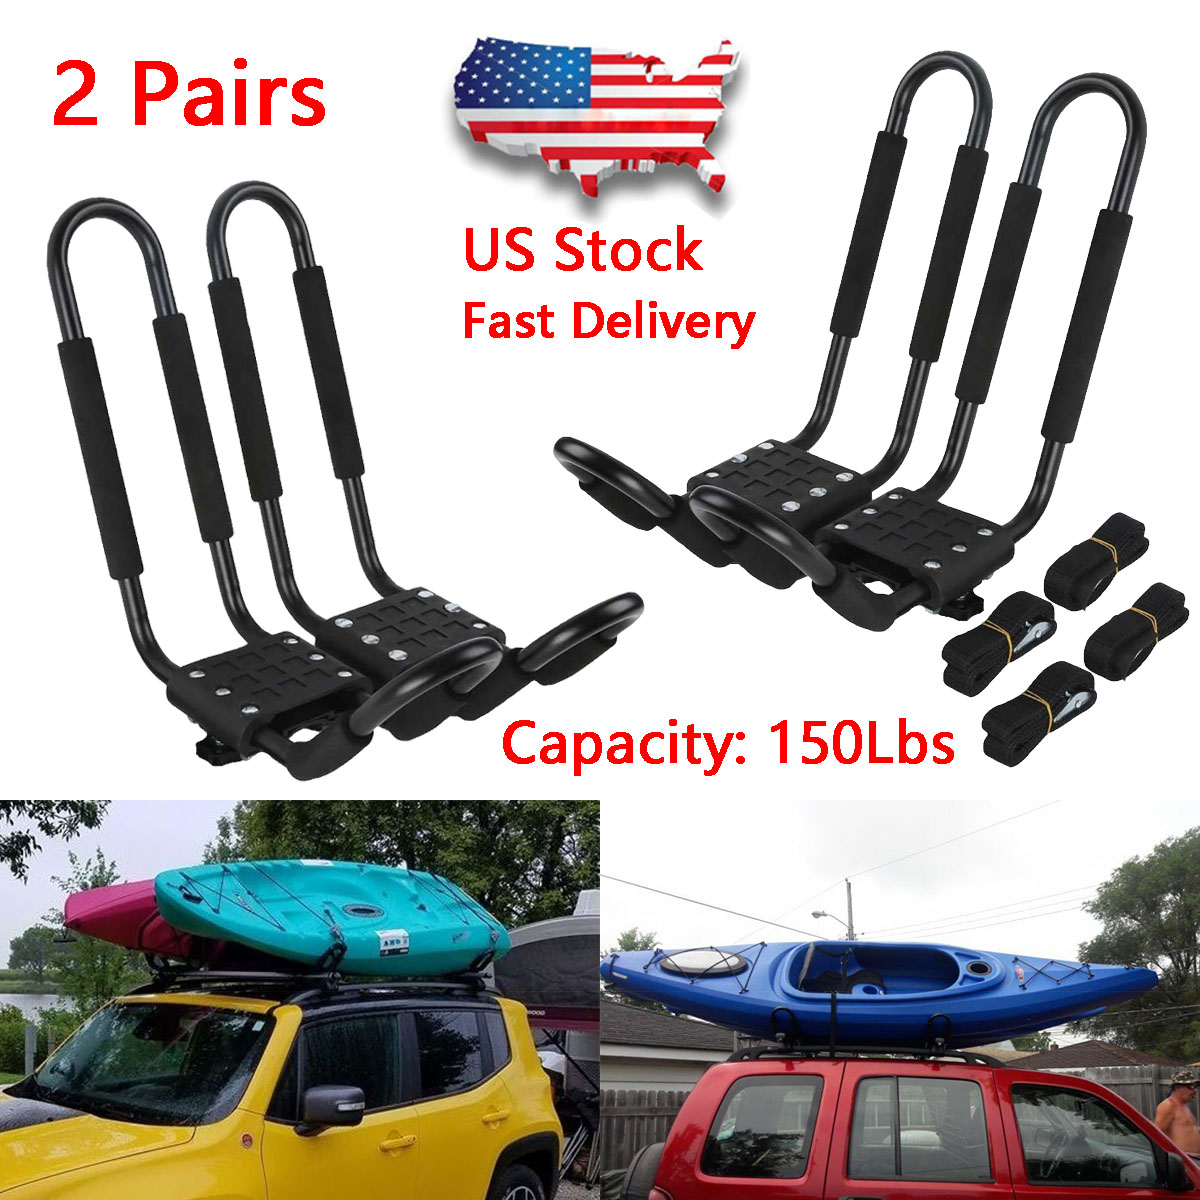 DrSportsUSA 1 Pairs Universal J-Bar Kayak Rack Roof Top Carrier for Kayak Canoe Paddle Boat Mounted on Car SUV